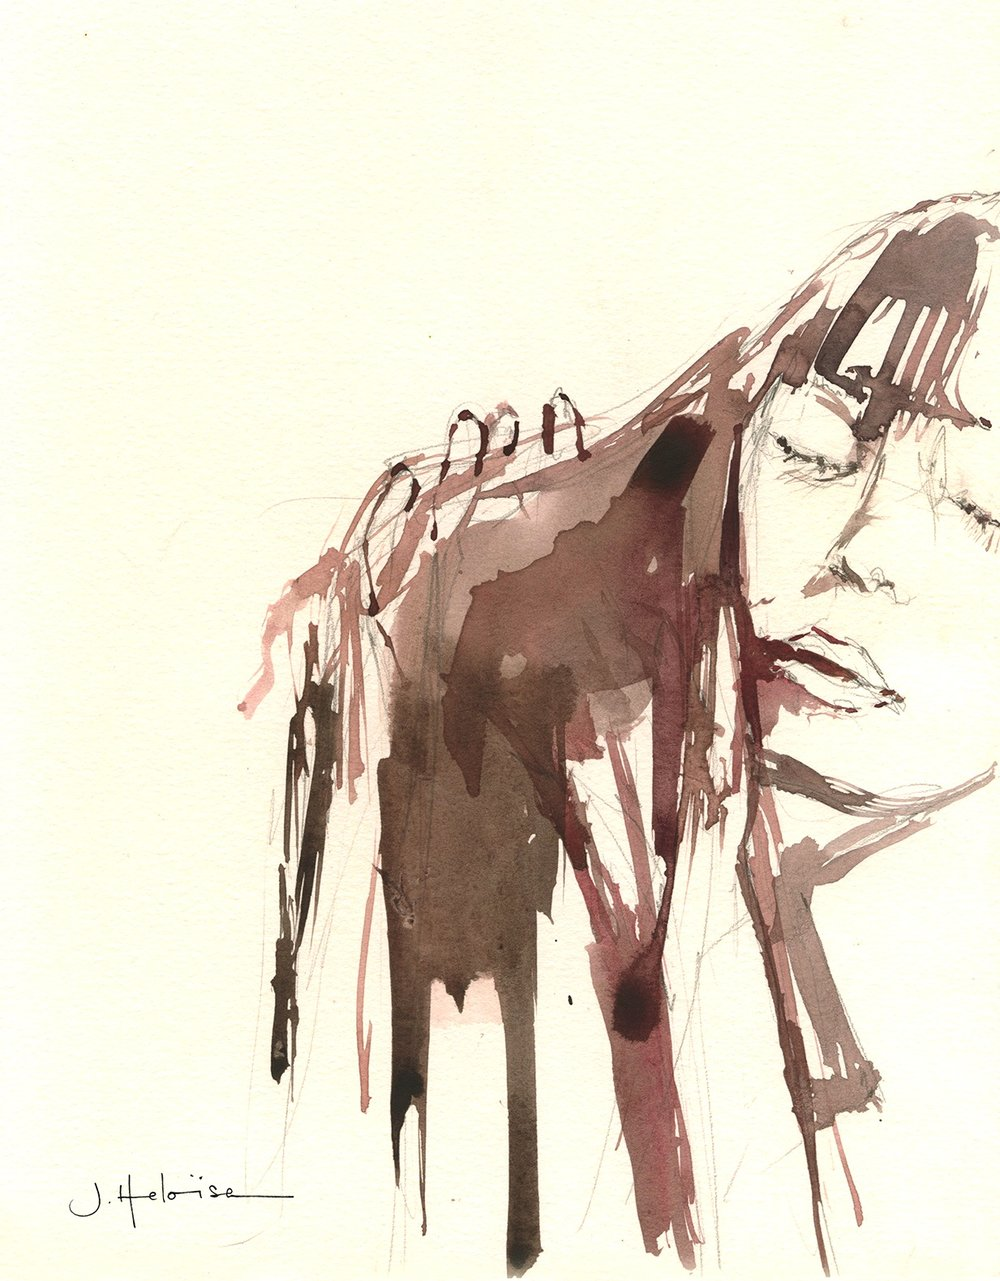 Not Sleeping, 2013 (from Fashion Faces)